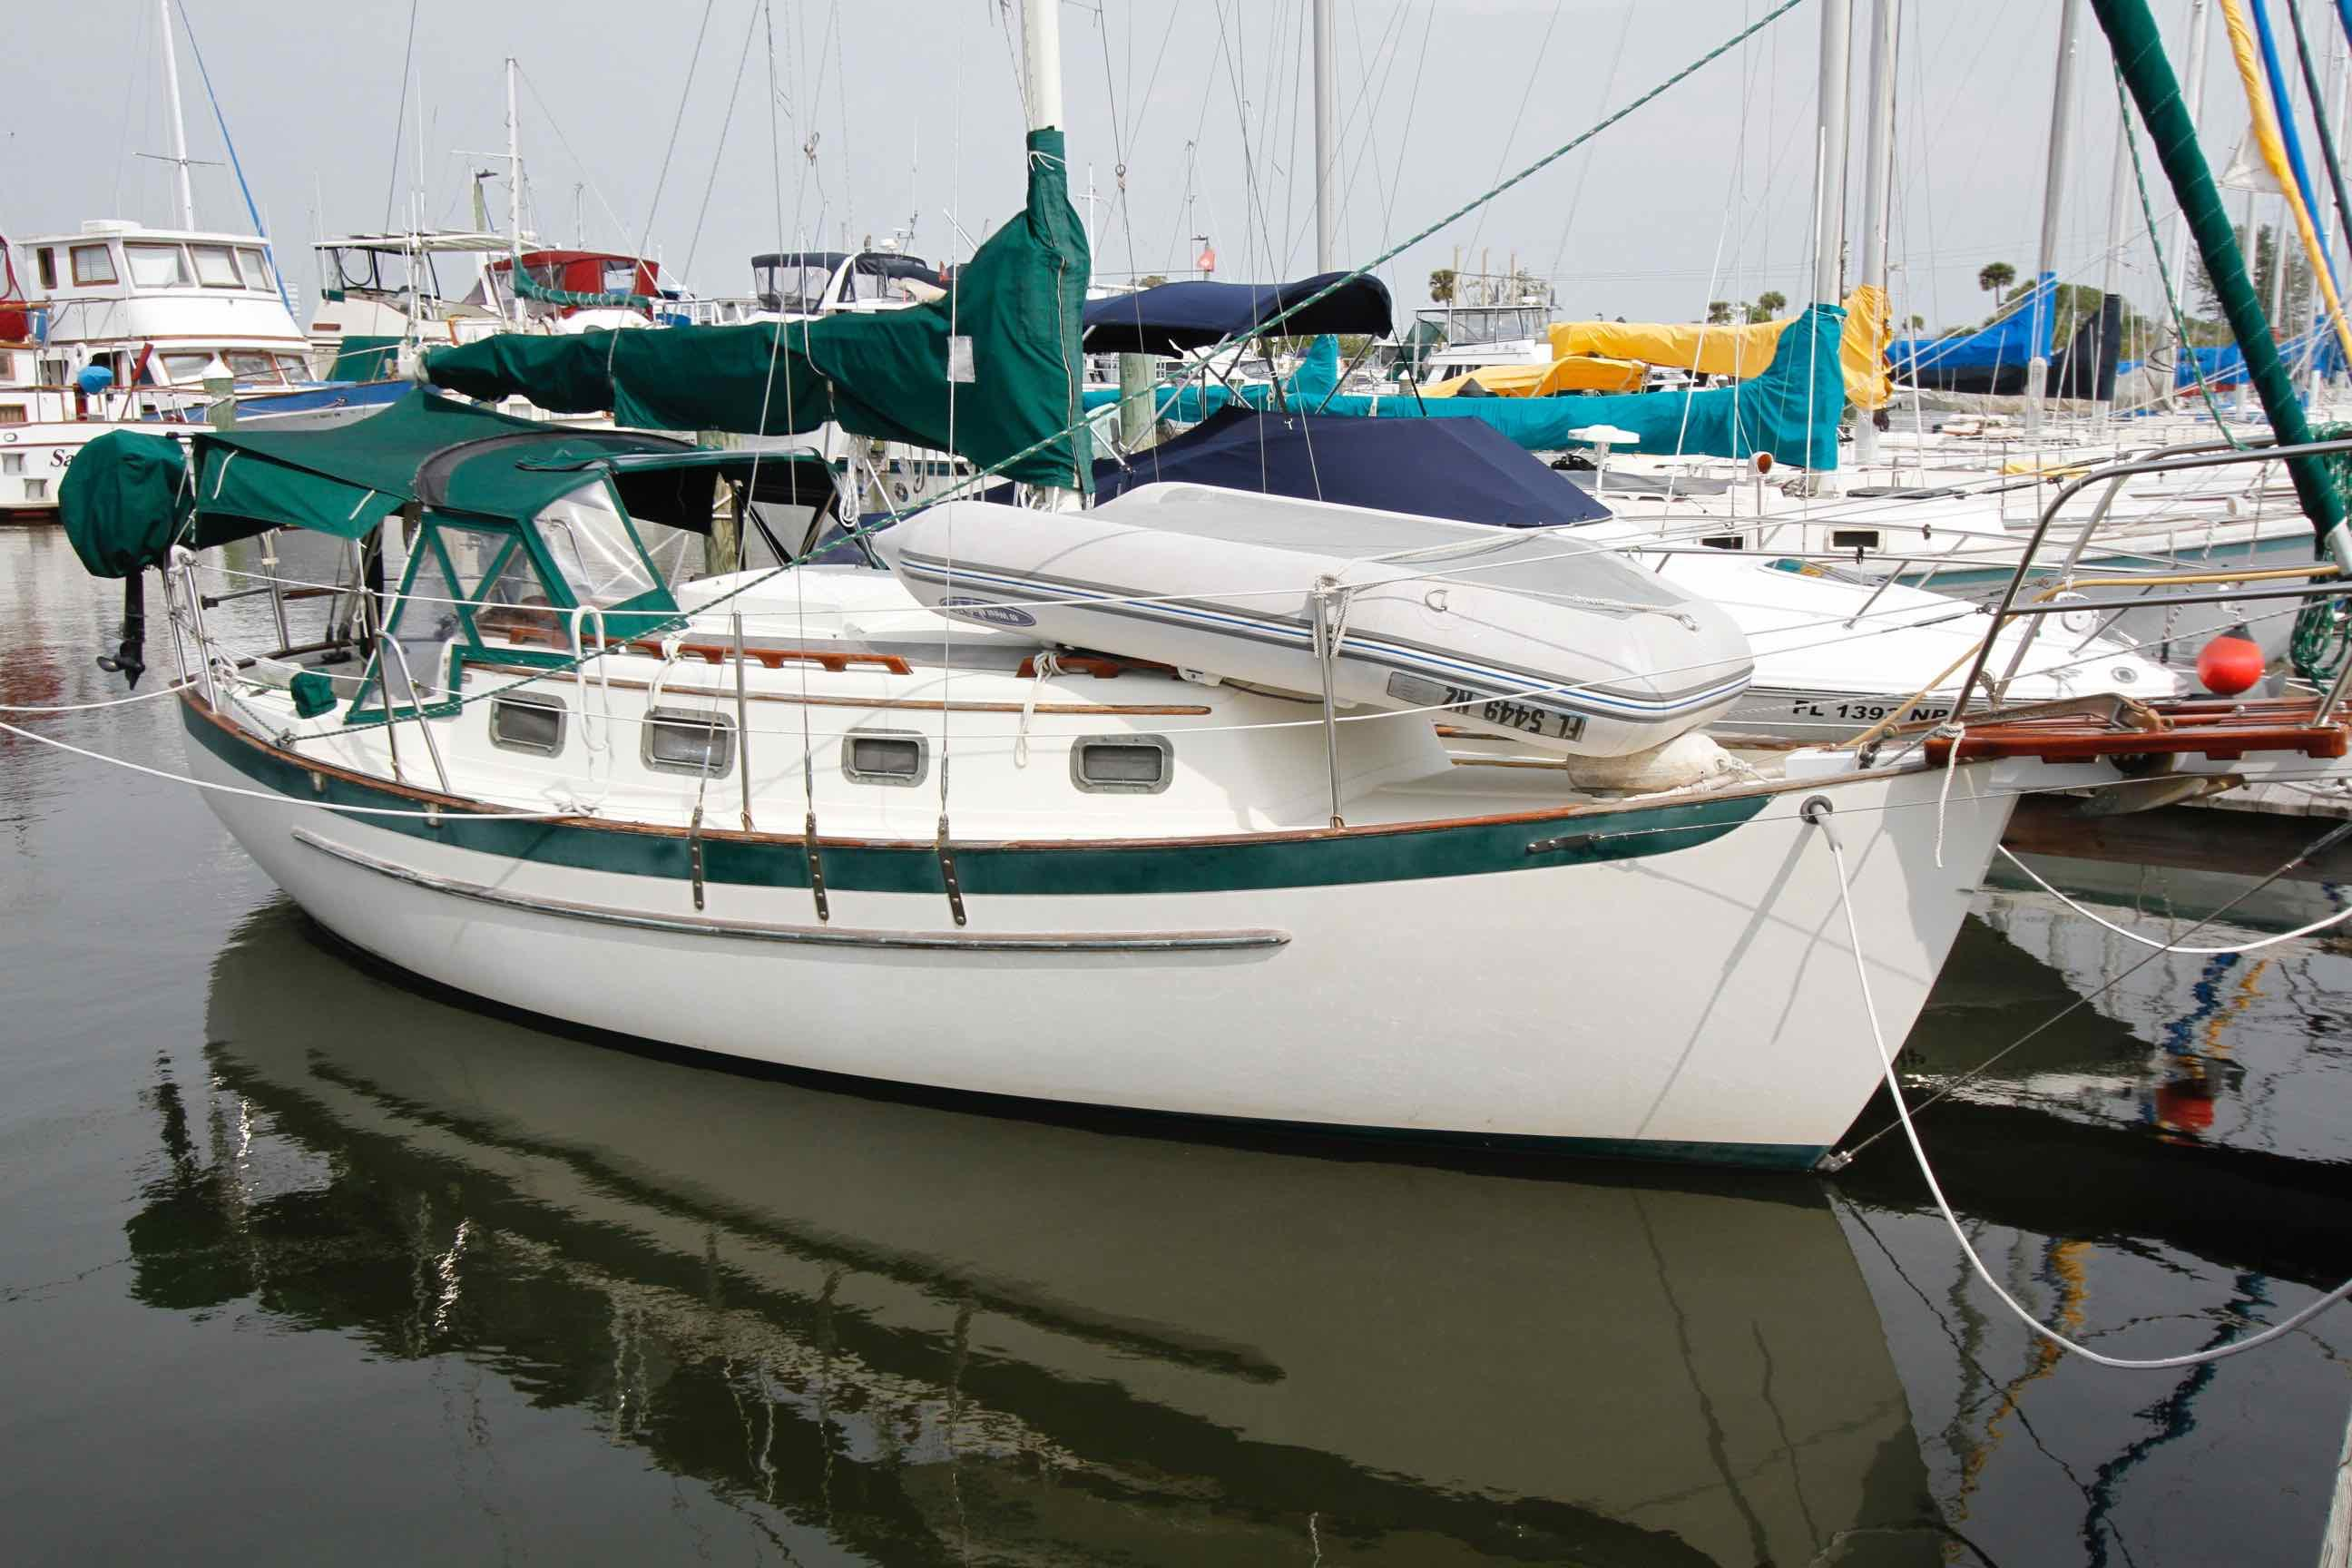 24' Pacific Seacraft 1989 Dana 24